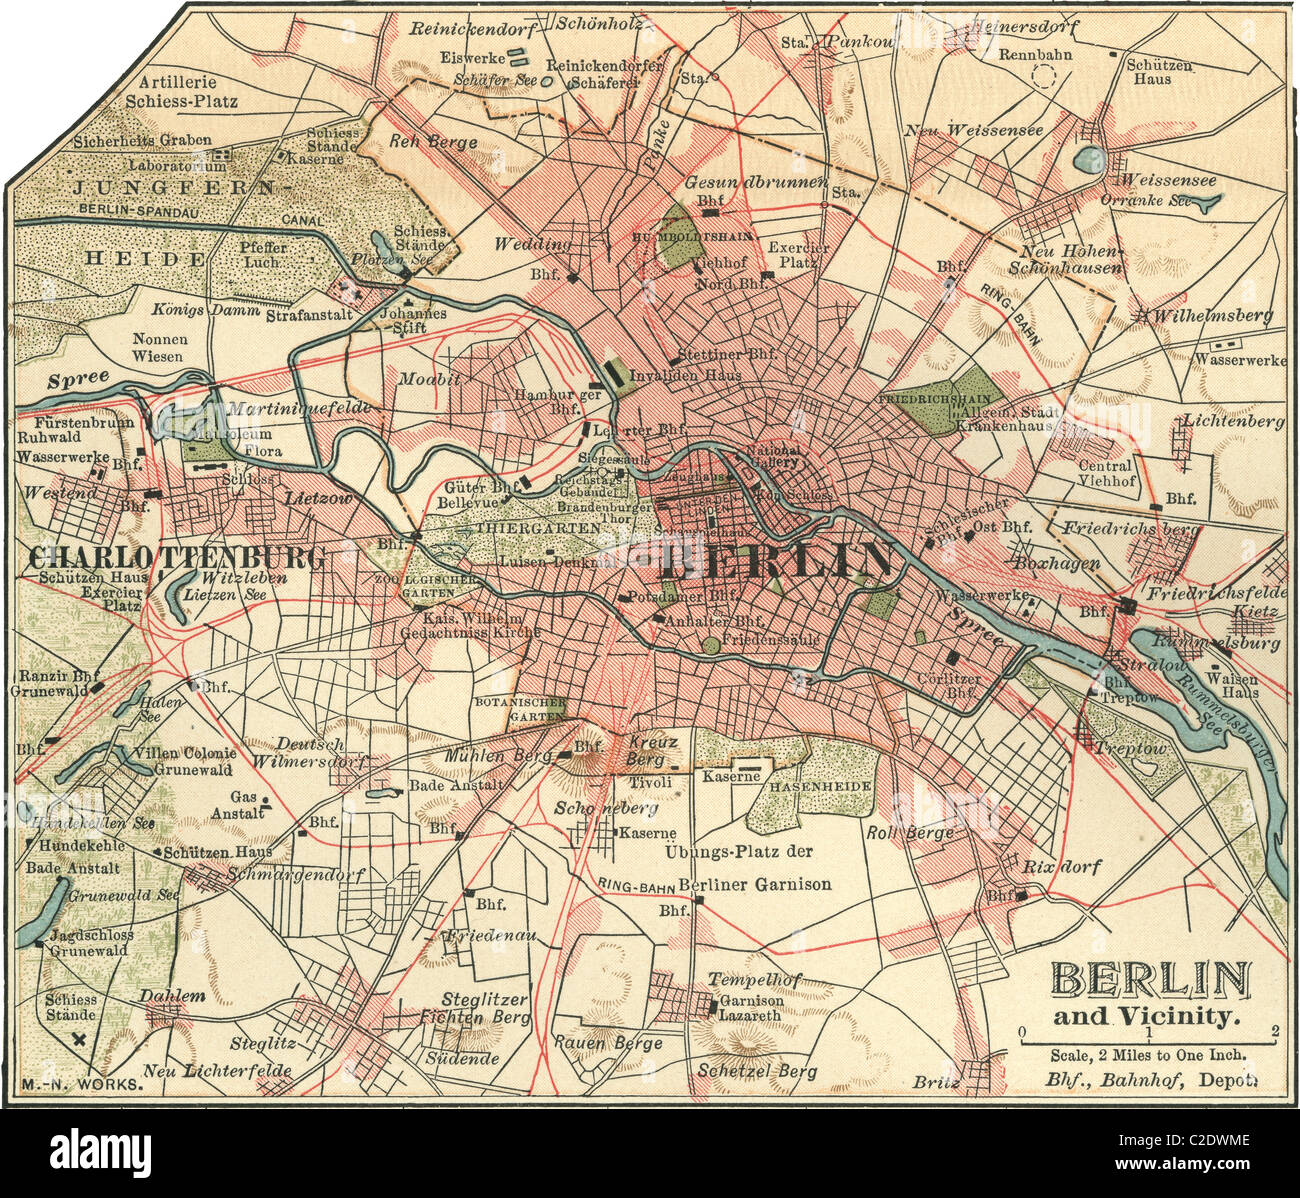 Map of Berlin Stock Photo: 35955598 - Alamy